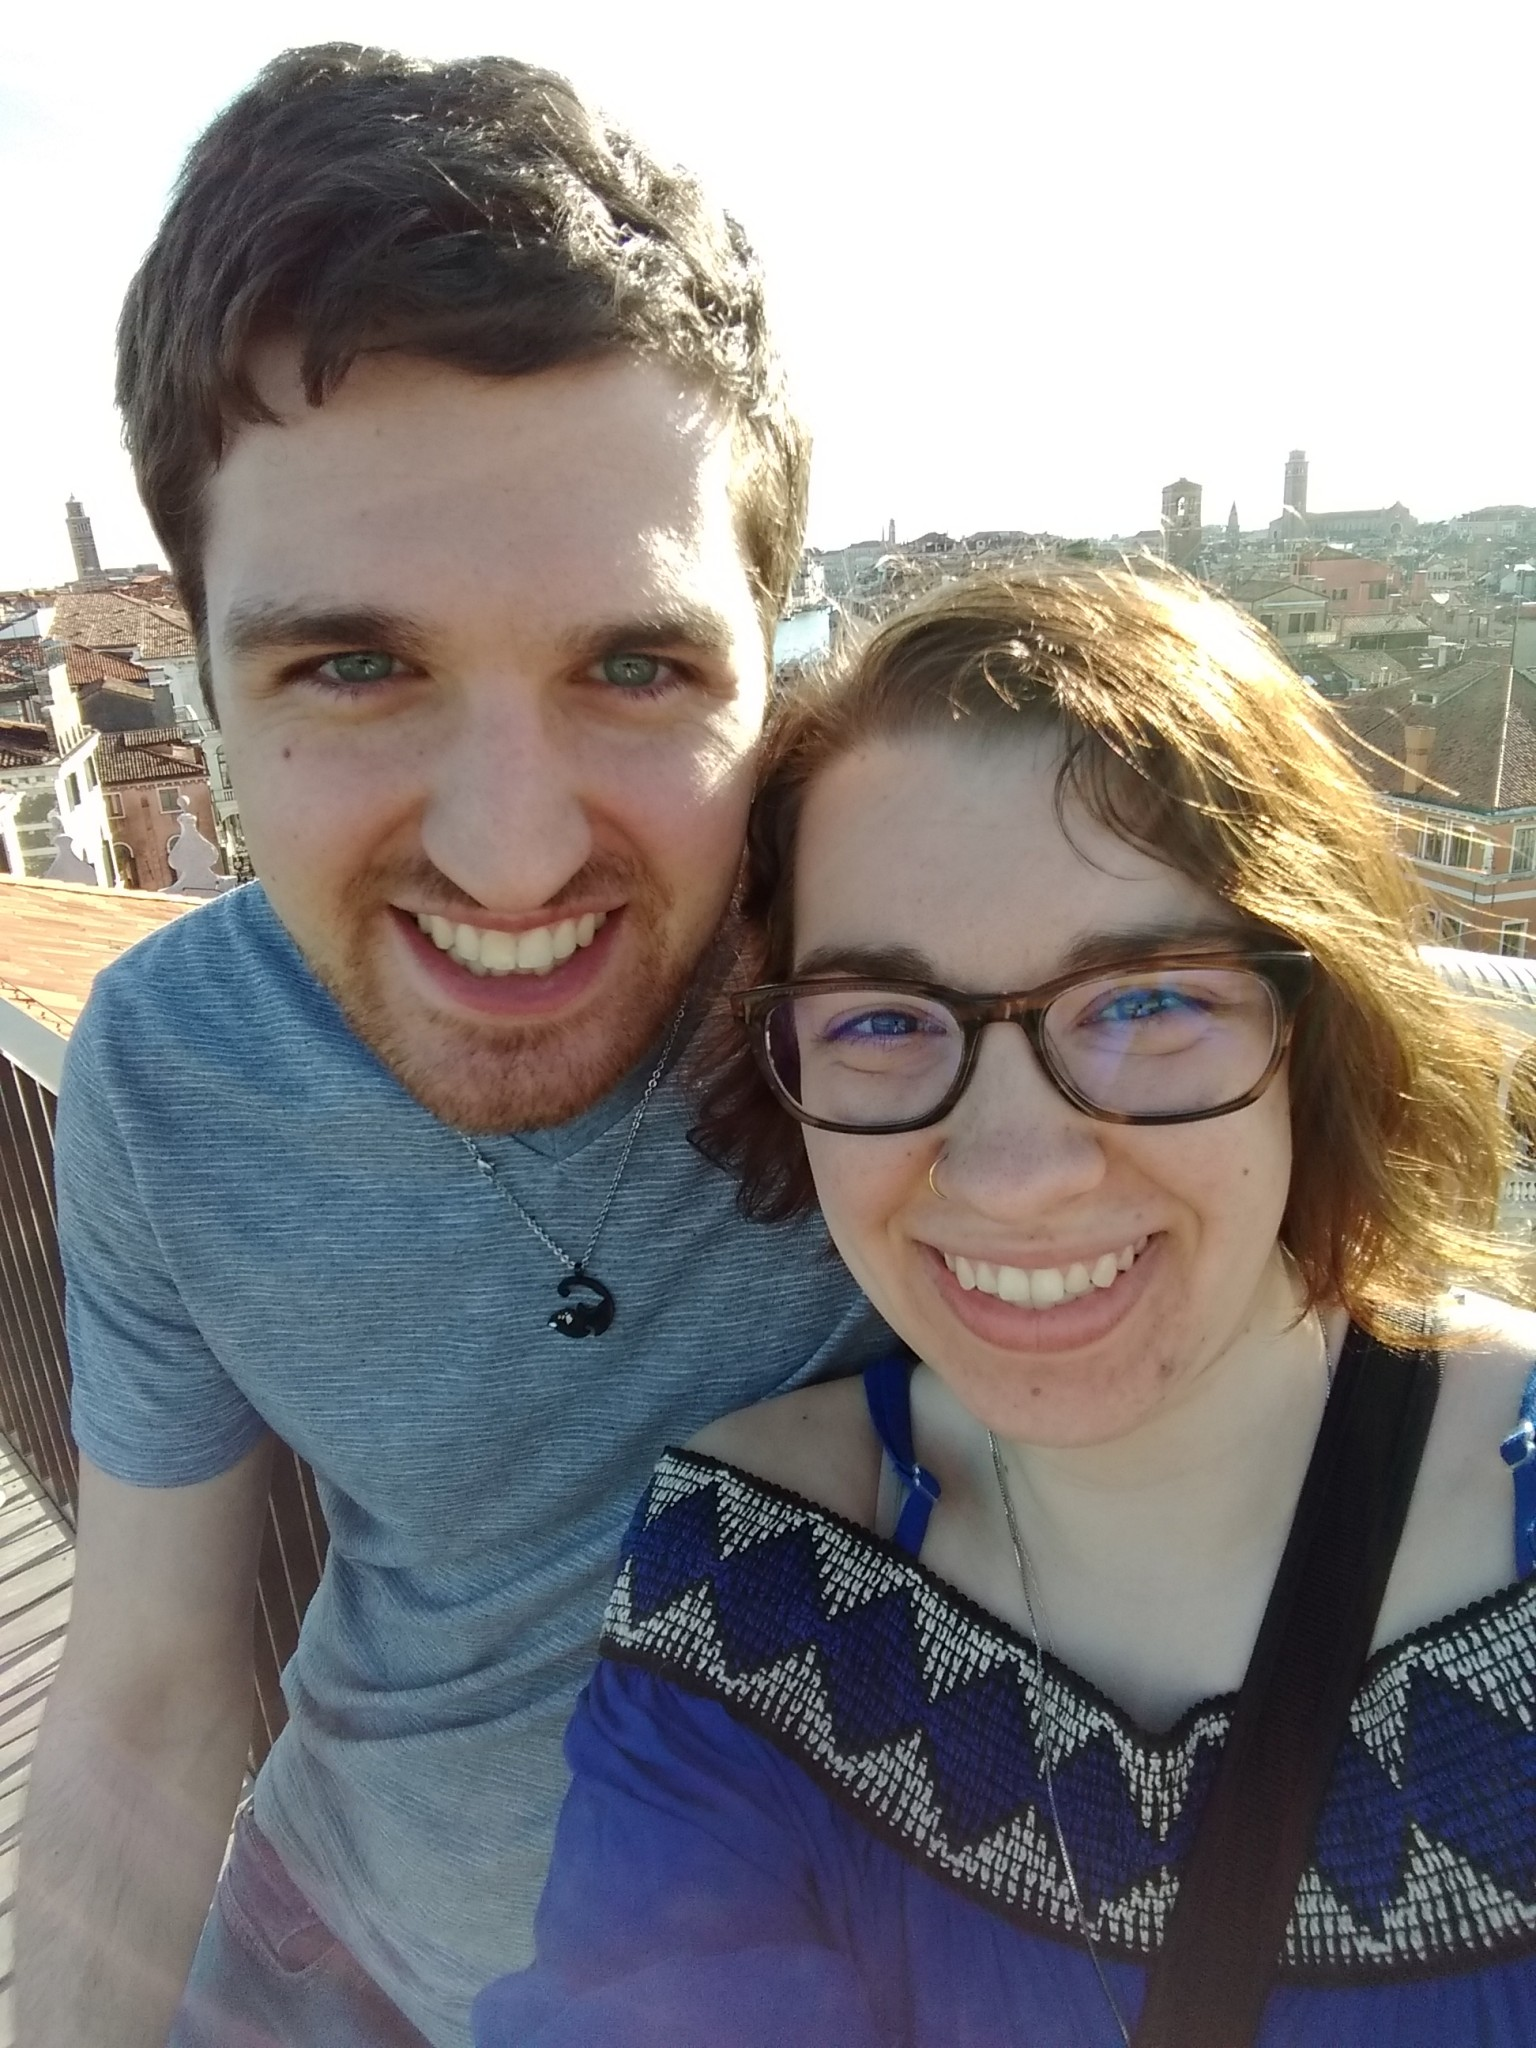 The author and her fiance, Tyler, take a break from the T Fondaco dei Tedeschi's Rooftop Terrace view to snap a quick photo. (Photo by Katie Siebenaller)